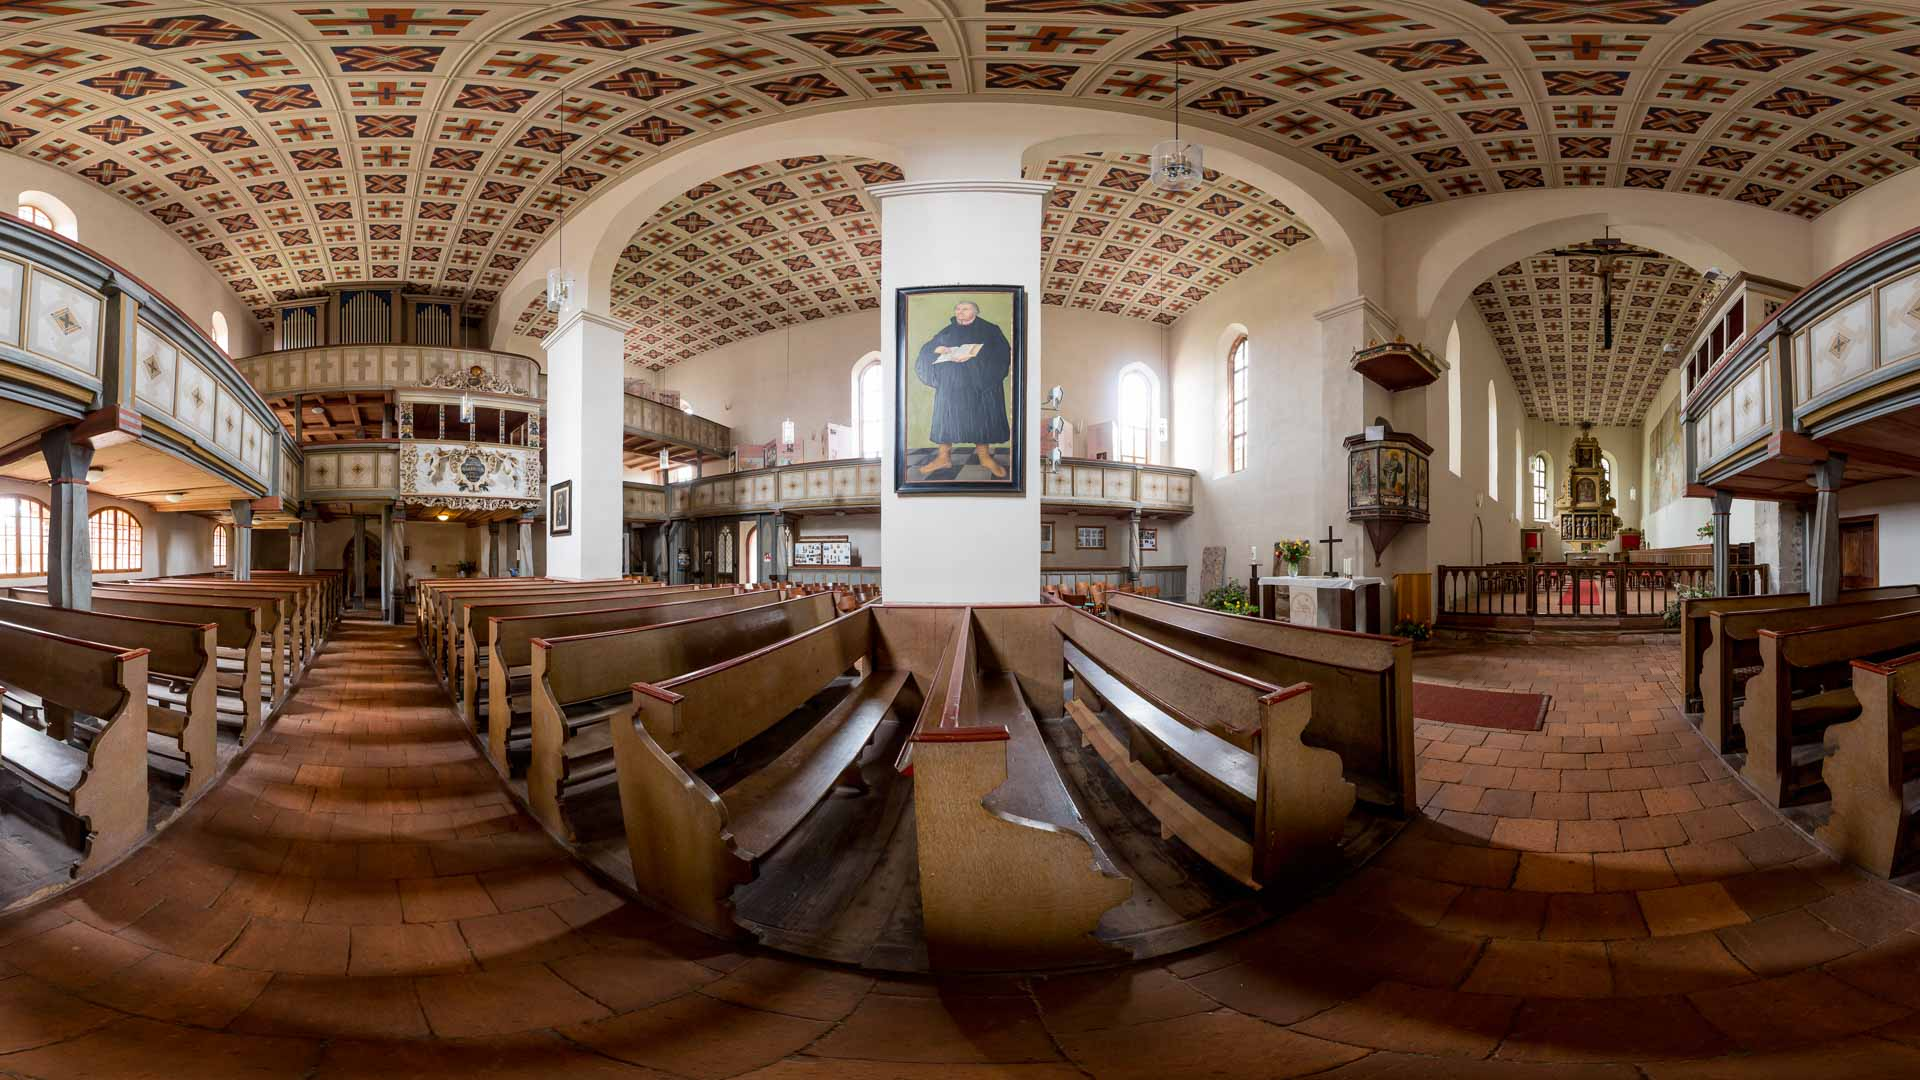 360° Luthertour title=360° Luthertour